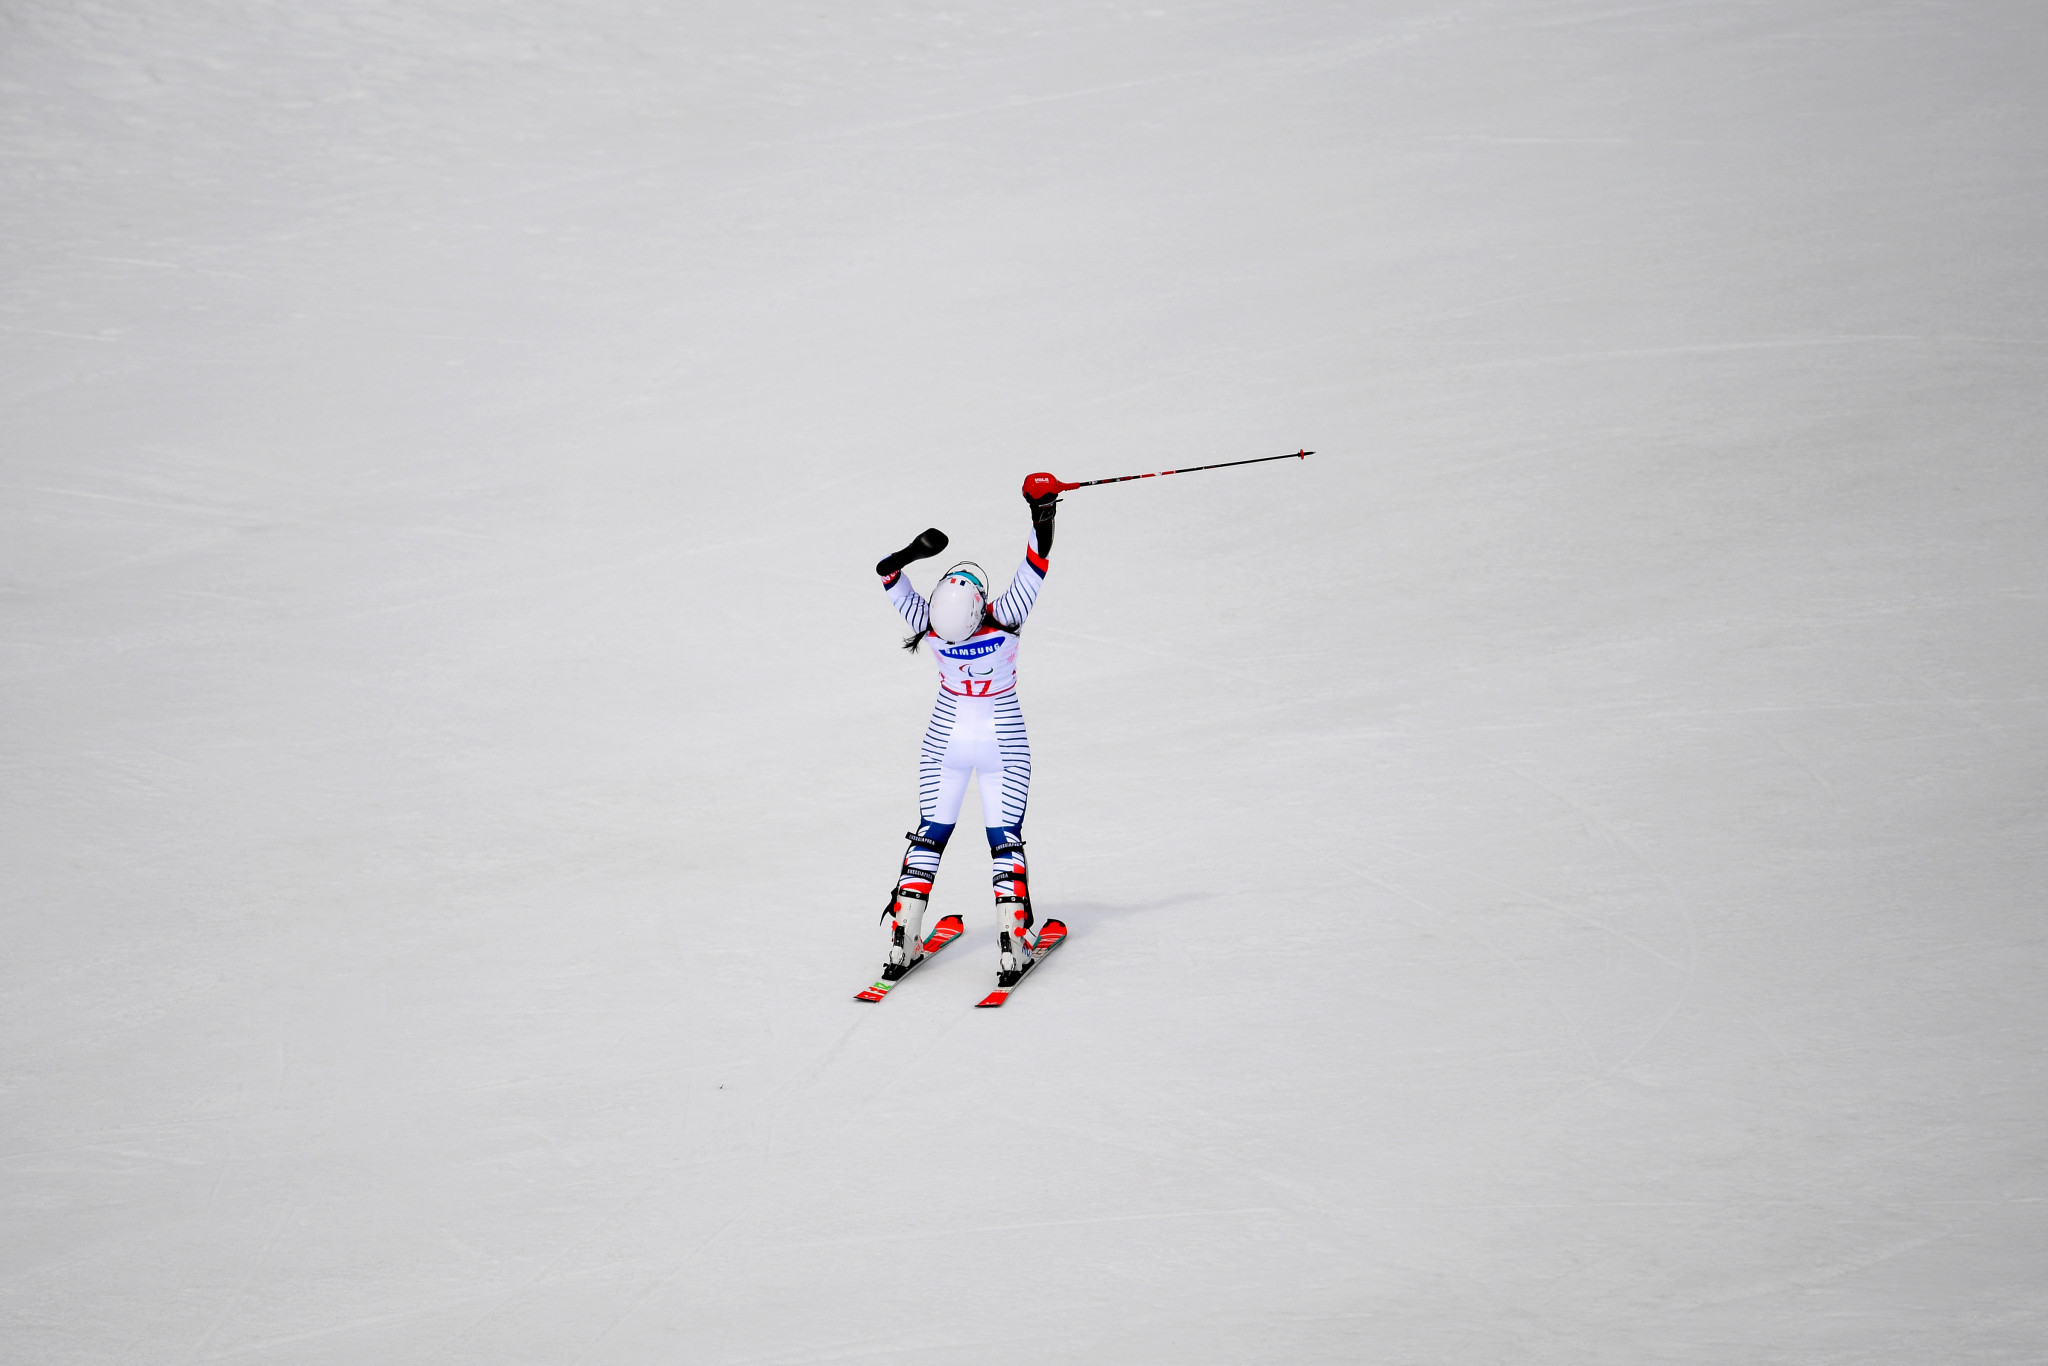 Bochet off to winning start at Veysonnaz World Para Alpine Skiing World Cup